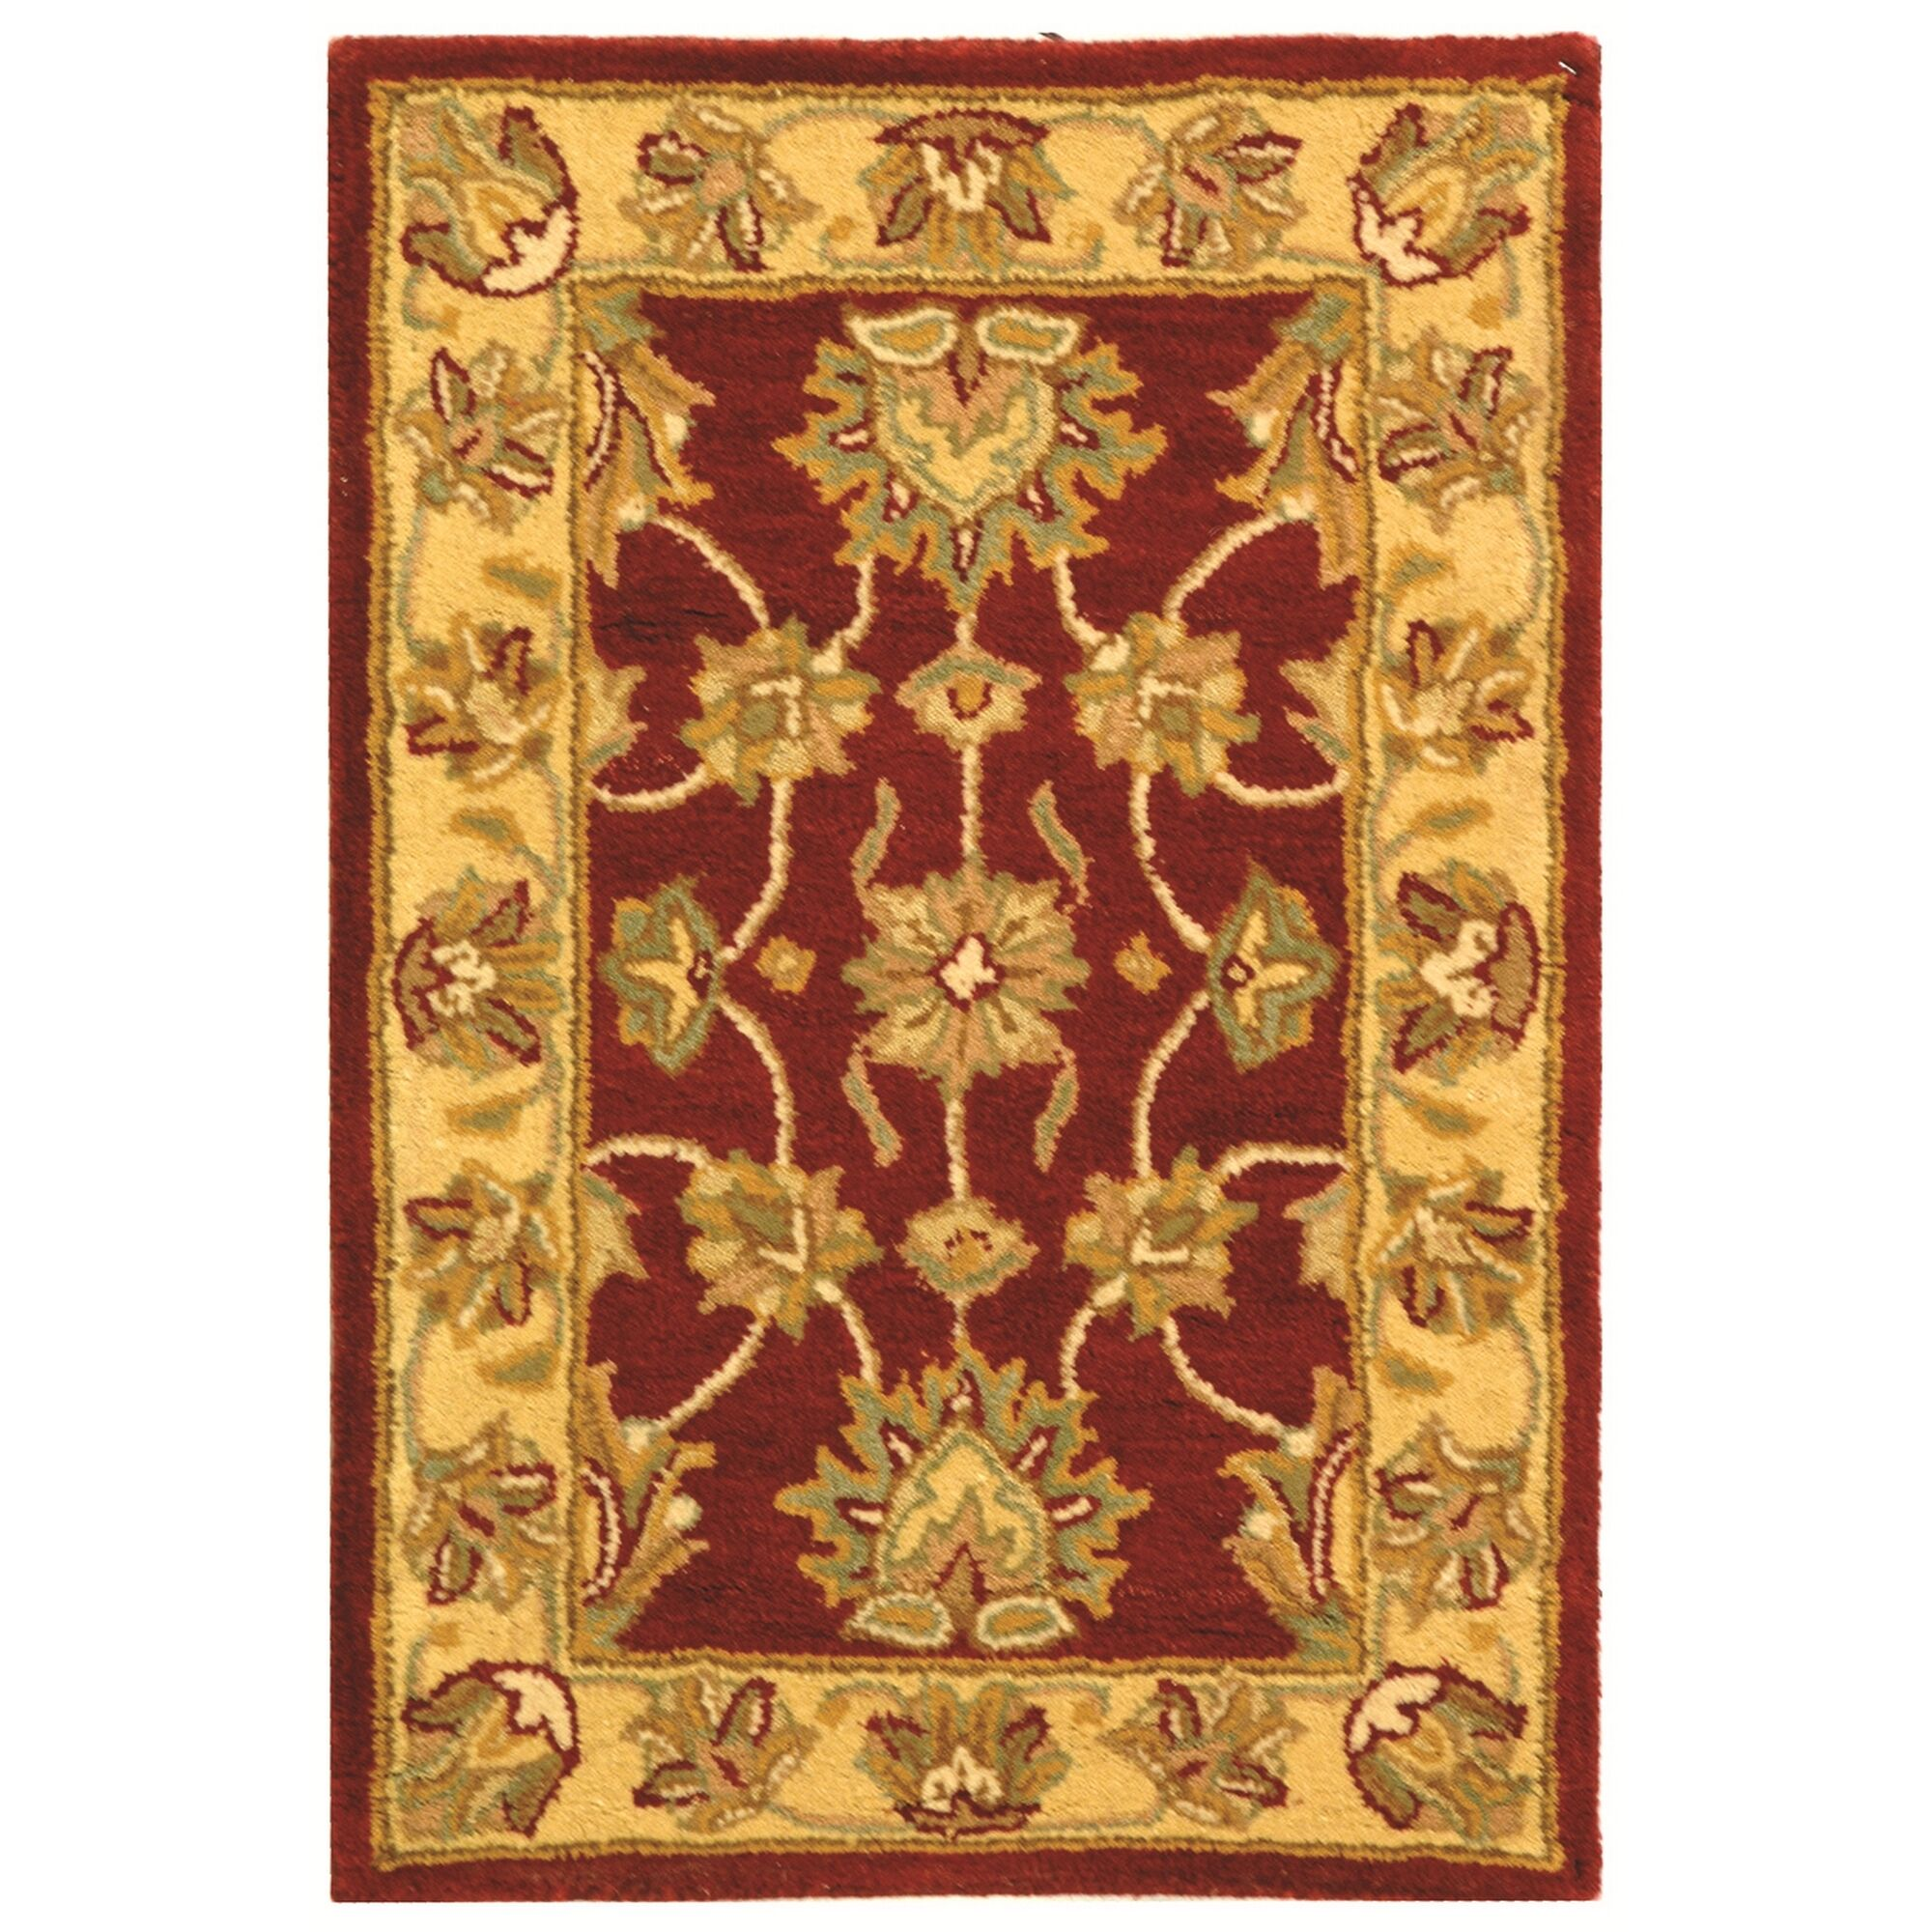 Cranmore Hand-Tufted Wool Red/Gold  Area Rug Rug Size: Rectangle 3' x 5'